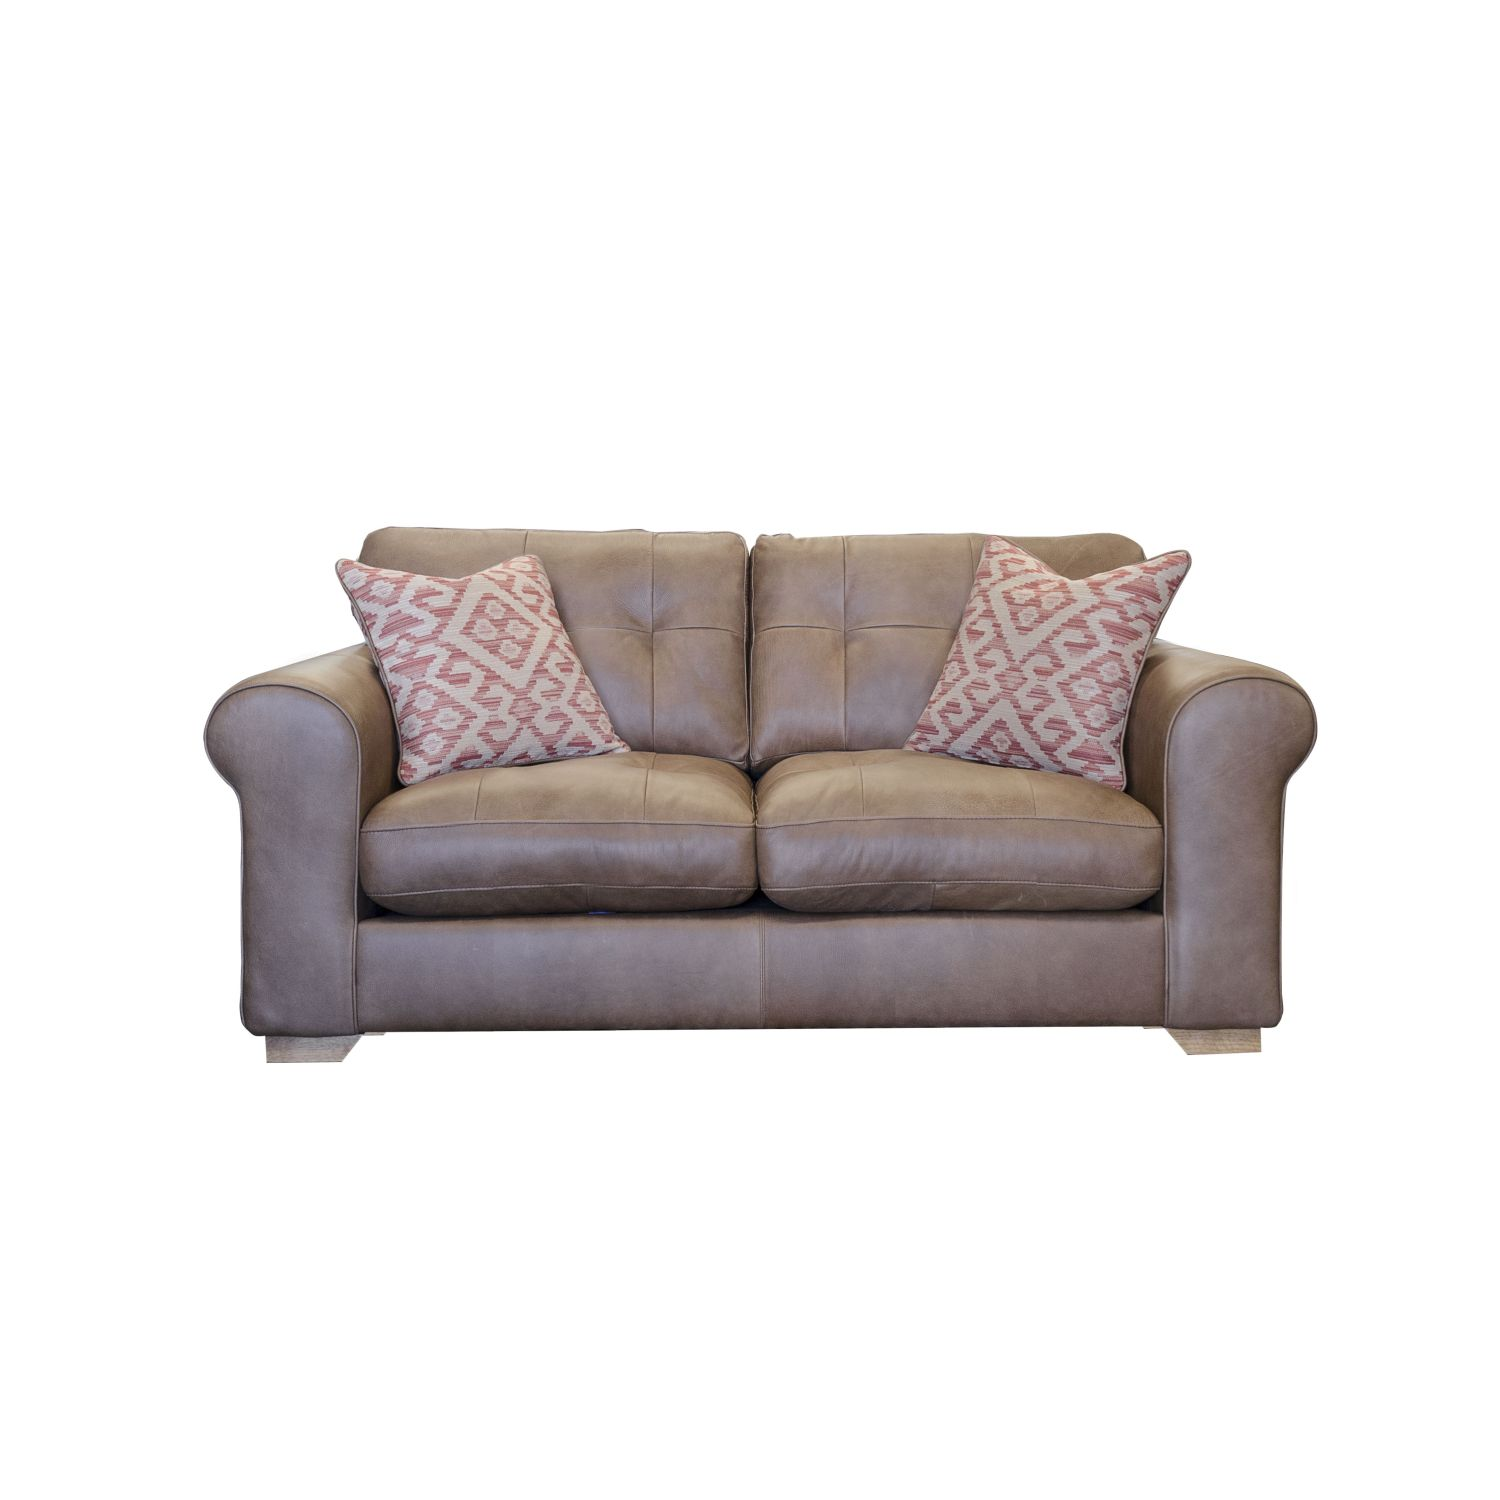 Image of Alexander & James Pemberley Small Leather Sofa